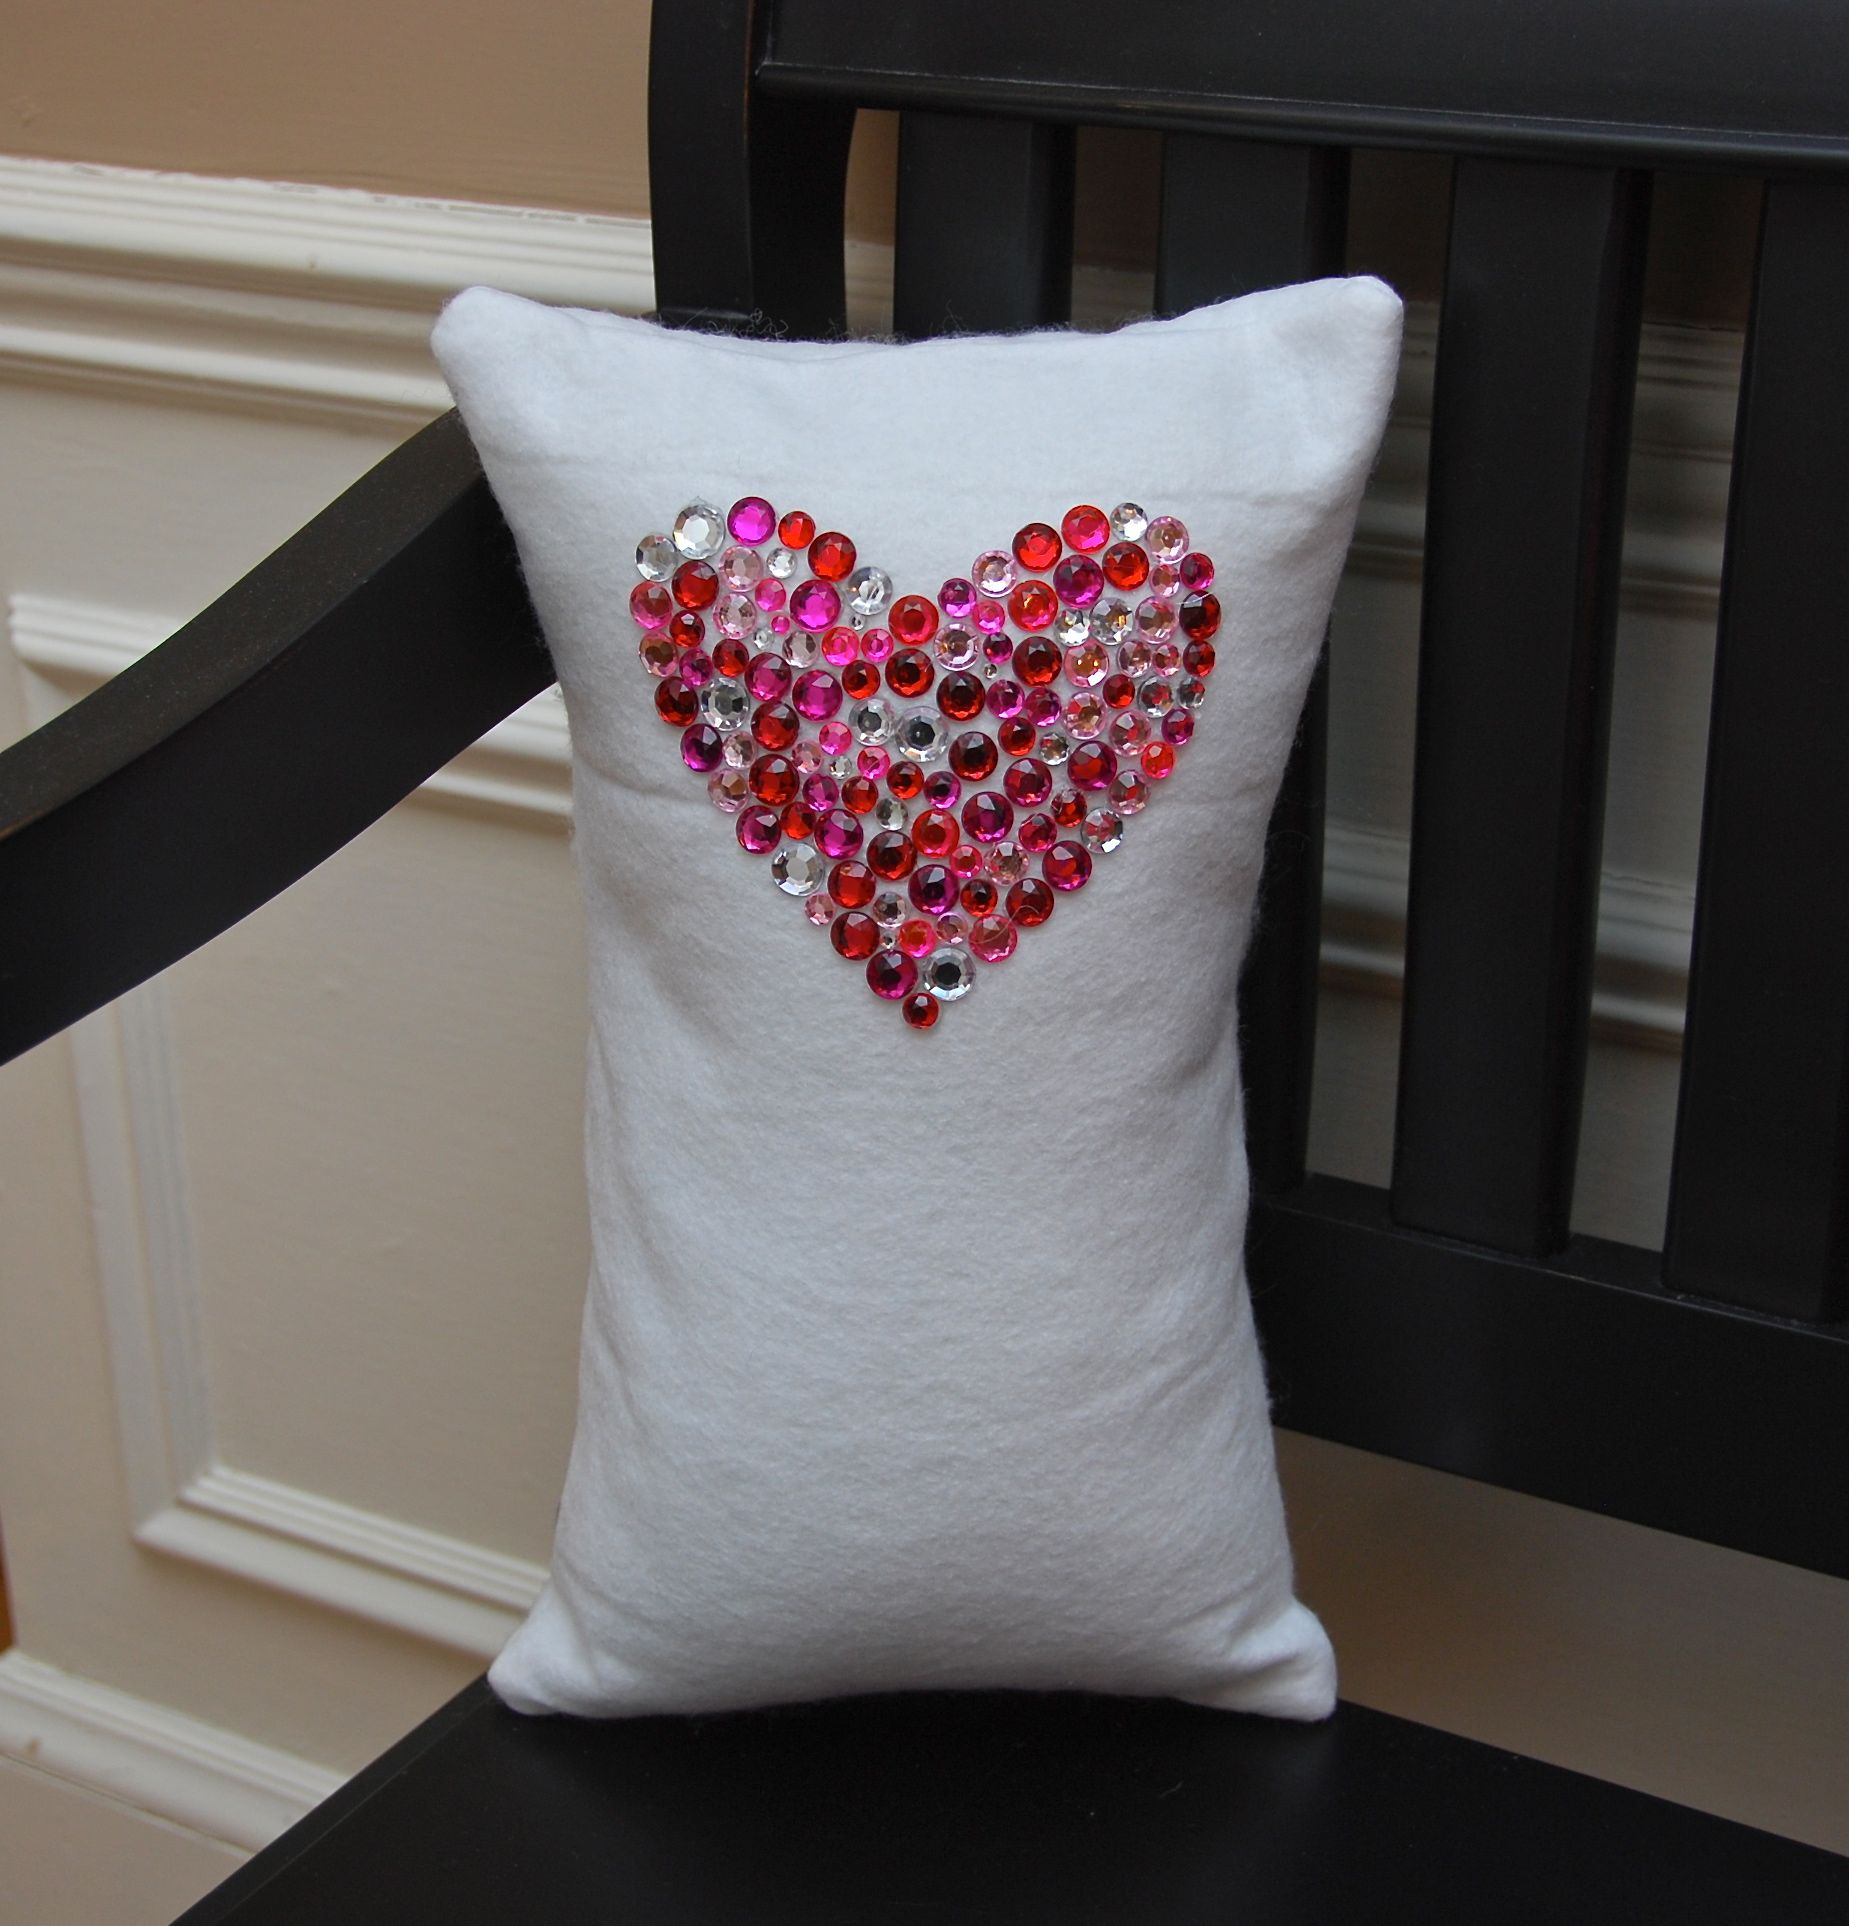 Valentines Pillows by Felt So Cute - Renovations - Haven Home - Business Directory